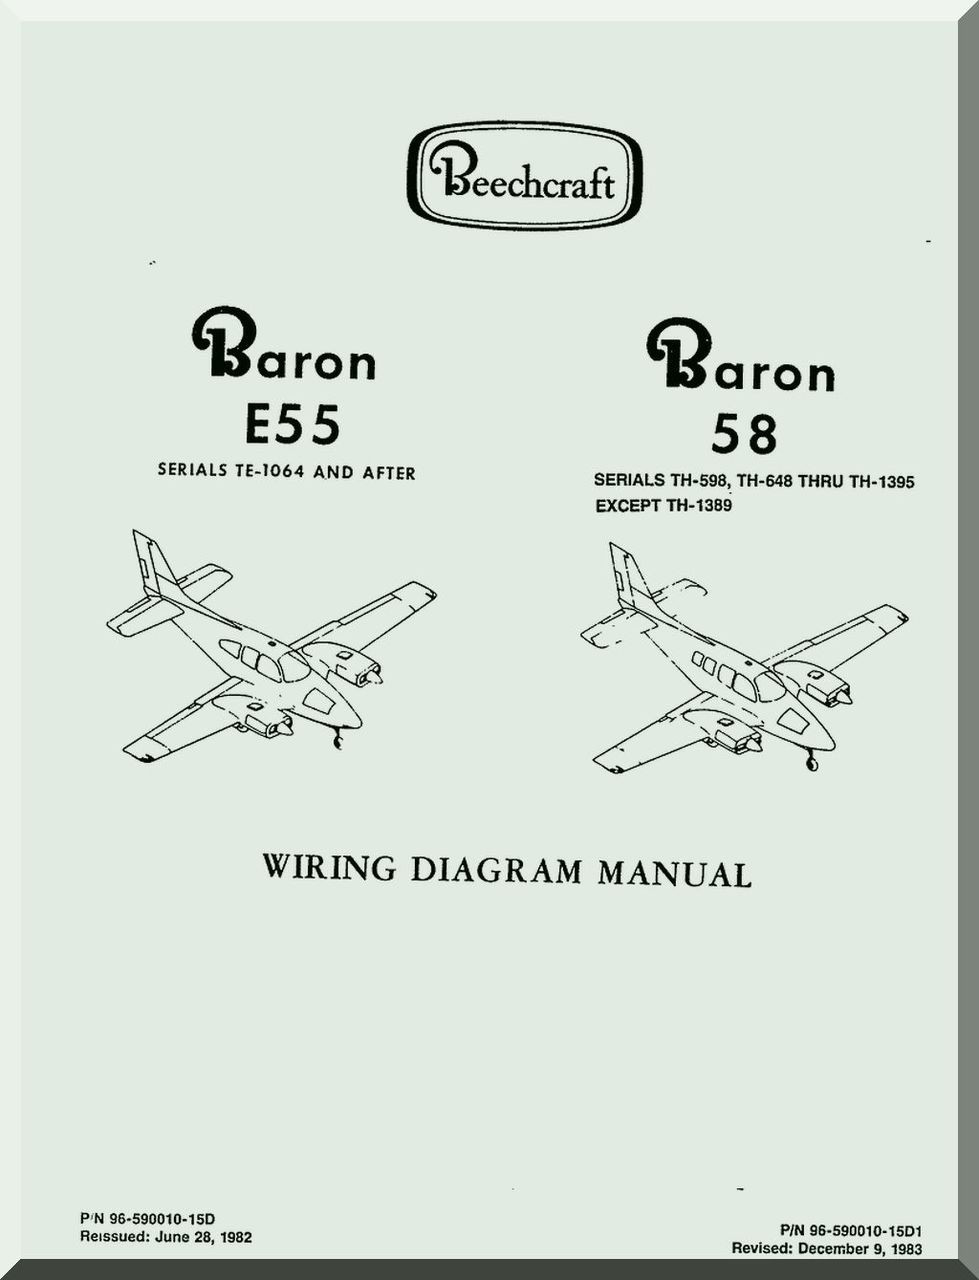 How To Read Aircraft Wiring Diagrams : 36 Wiring Diagram